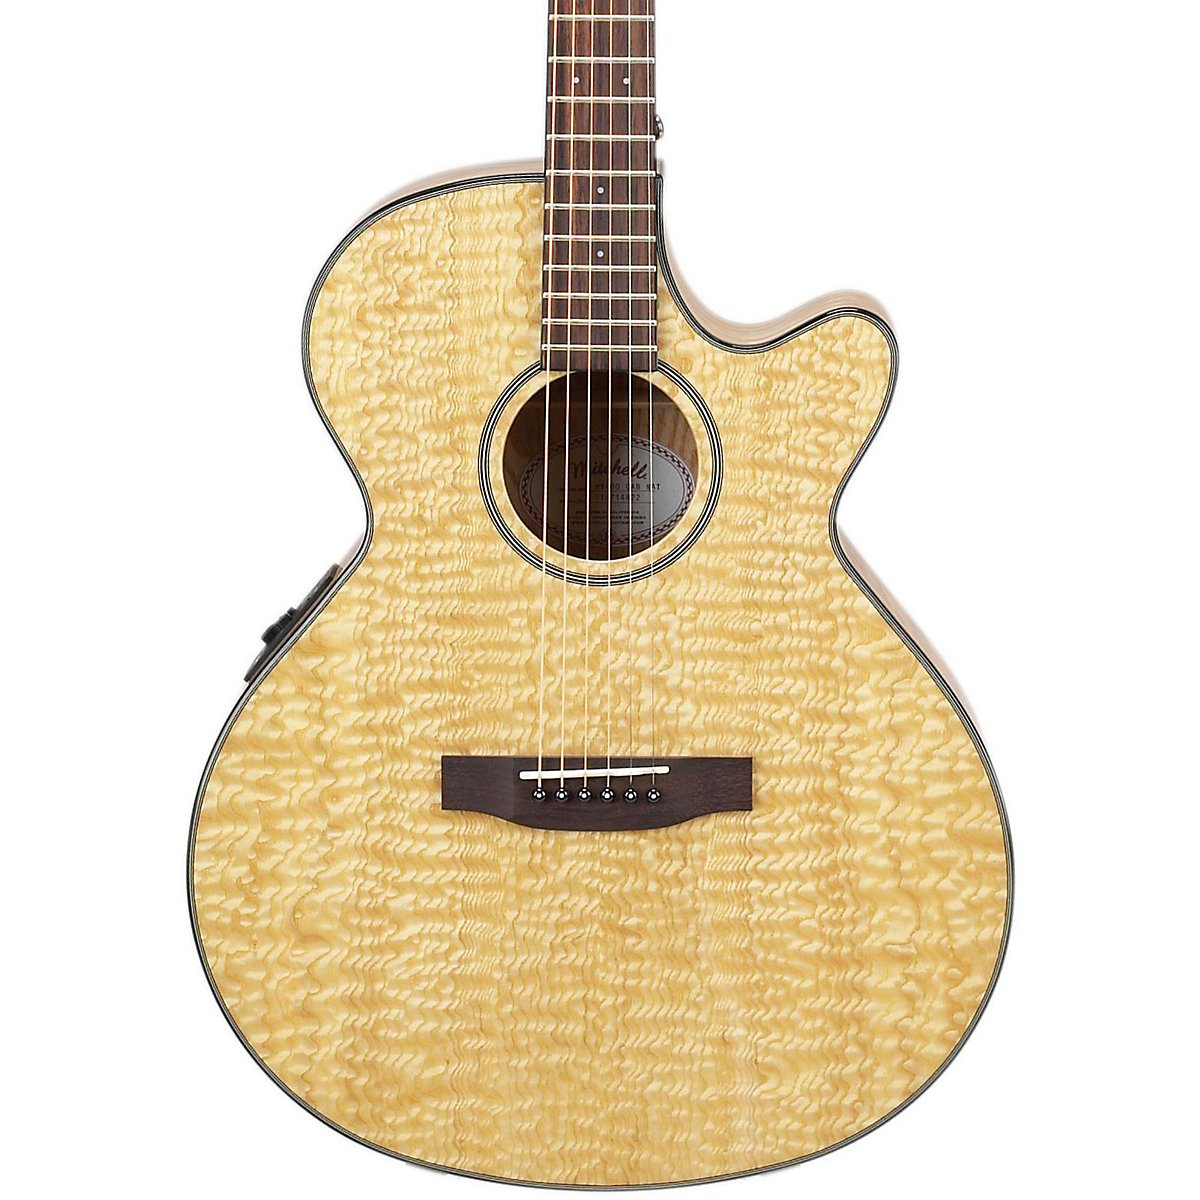 Mitchell MX400 Xotix Series Acoustic-Electric Guitar Natural Quilted Ash Burl electric guitar neck thru 7pcs real abalone binding red burst thin yellow center natural gutiar back ash wood grain body side